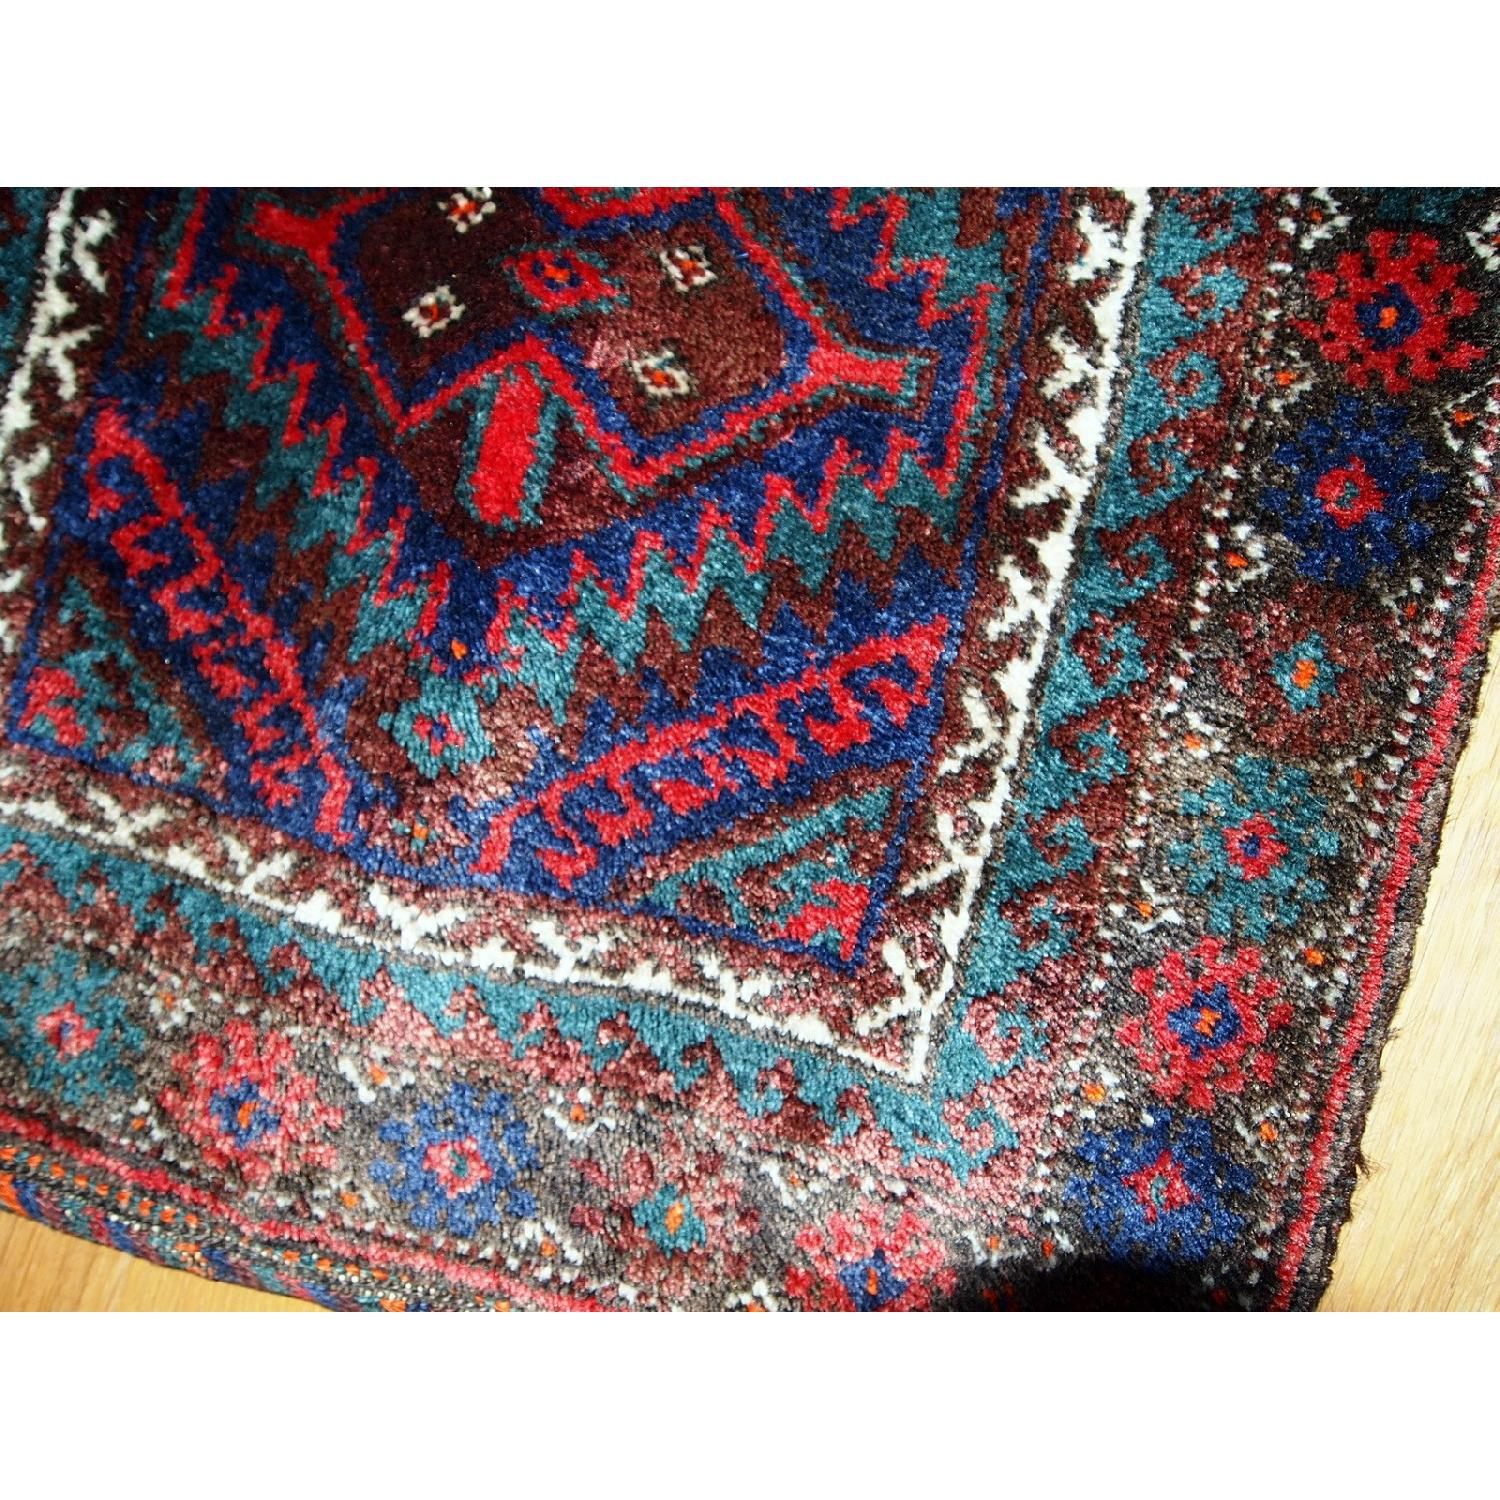 Antique Handmade Persian Kurdish Salt Bag Rug-7